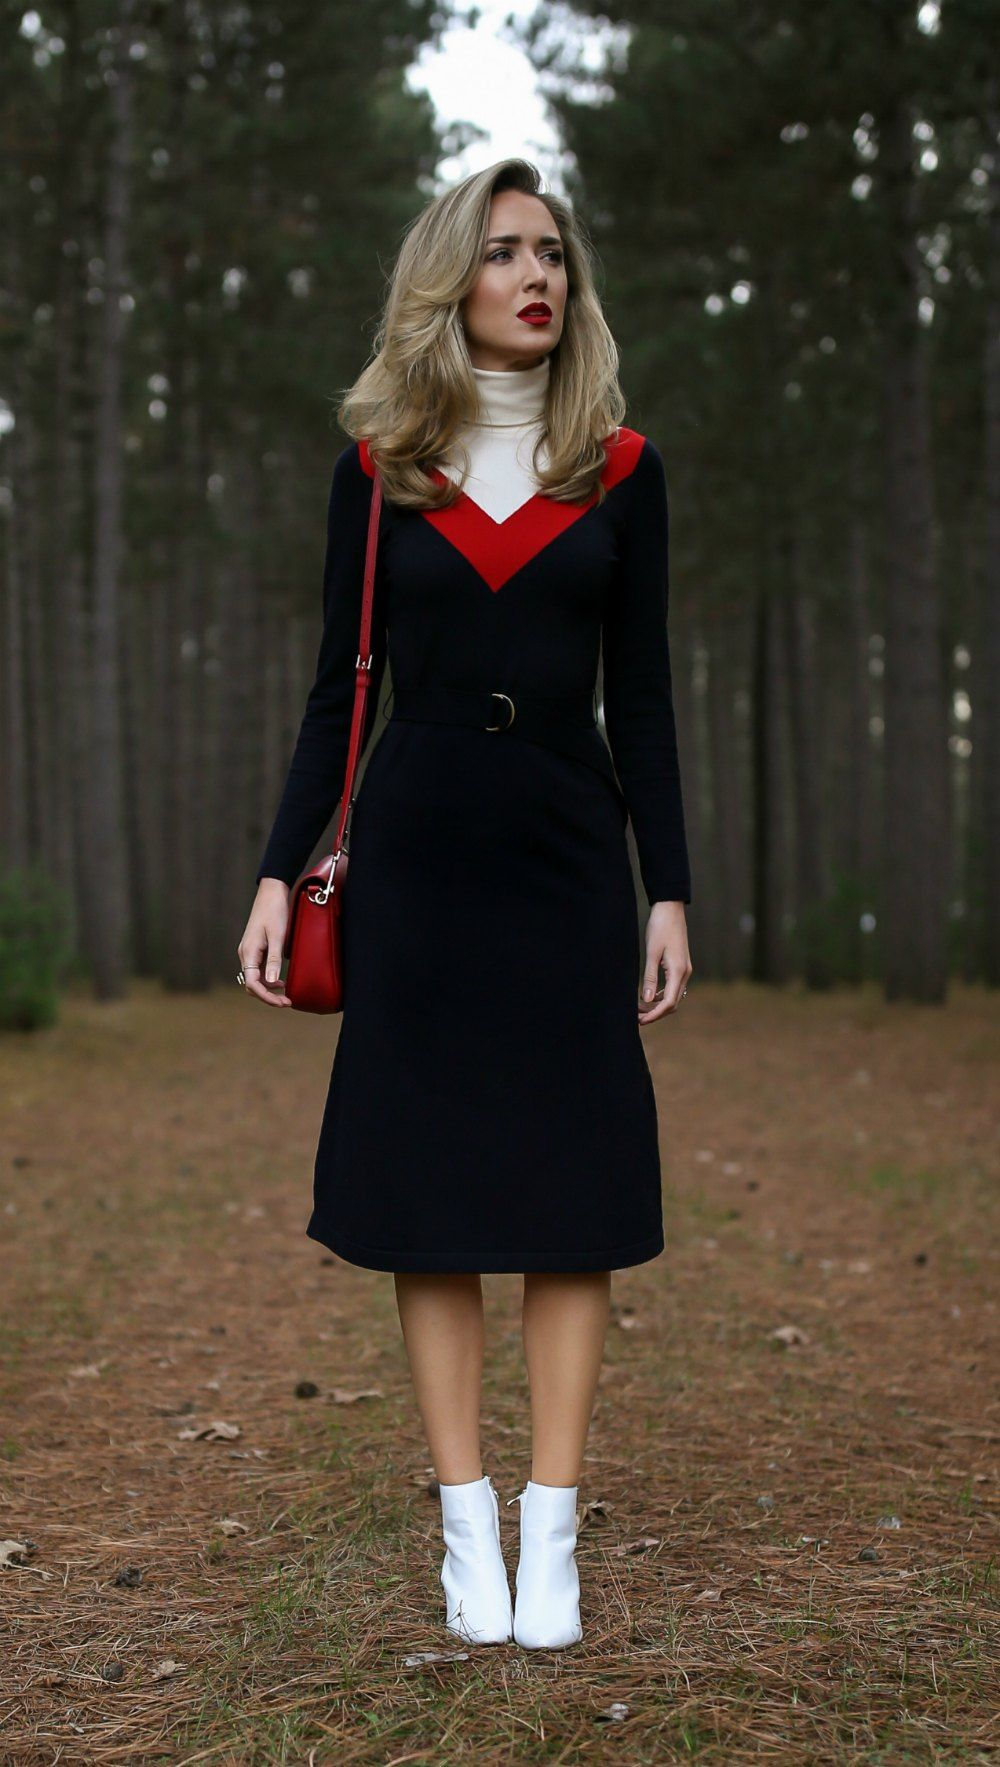 Ski Trip Turtleneck Sweater Midi Dress White Leather Ankle Boots Red Leather Cross Body Bag And A Deep Red Classy Dress Sweater Dress Midi Fashion Classy [ 1767 x 1000 Pixel ]